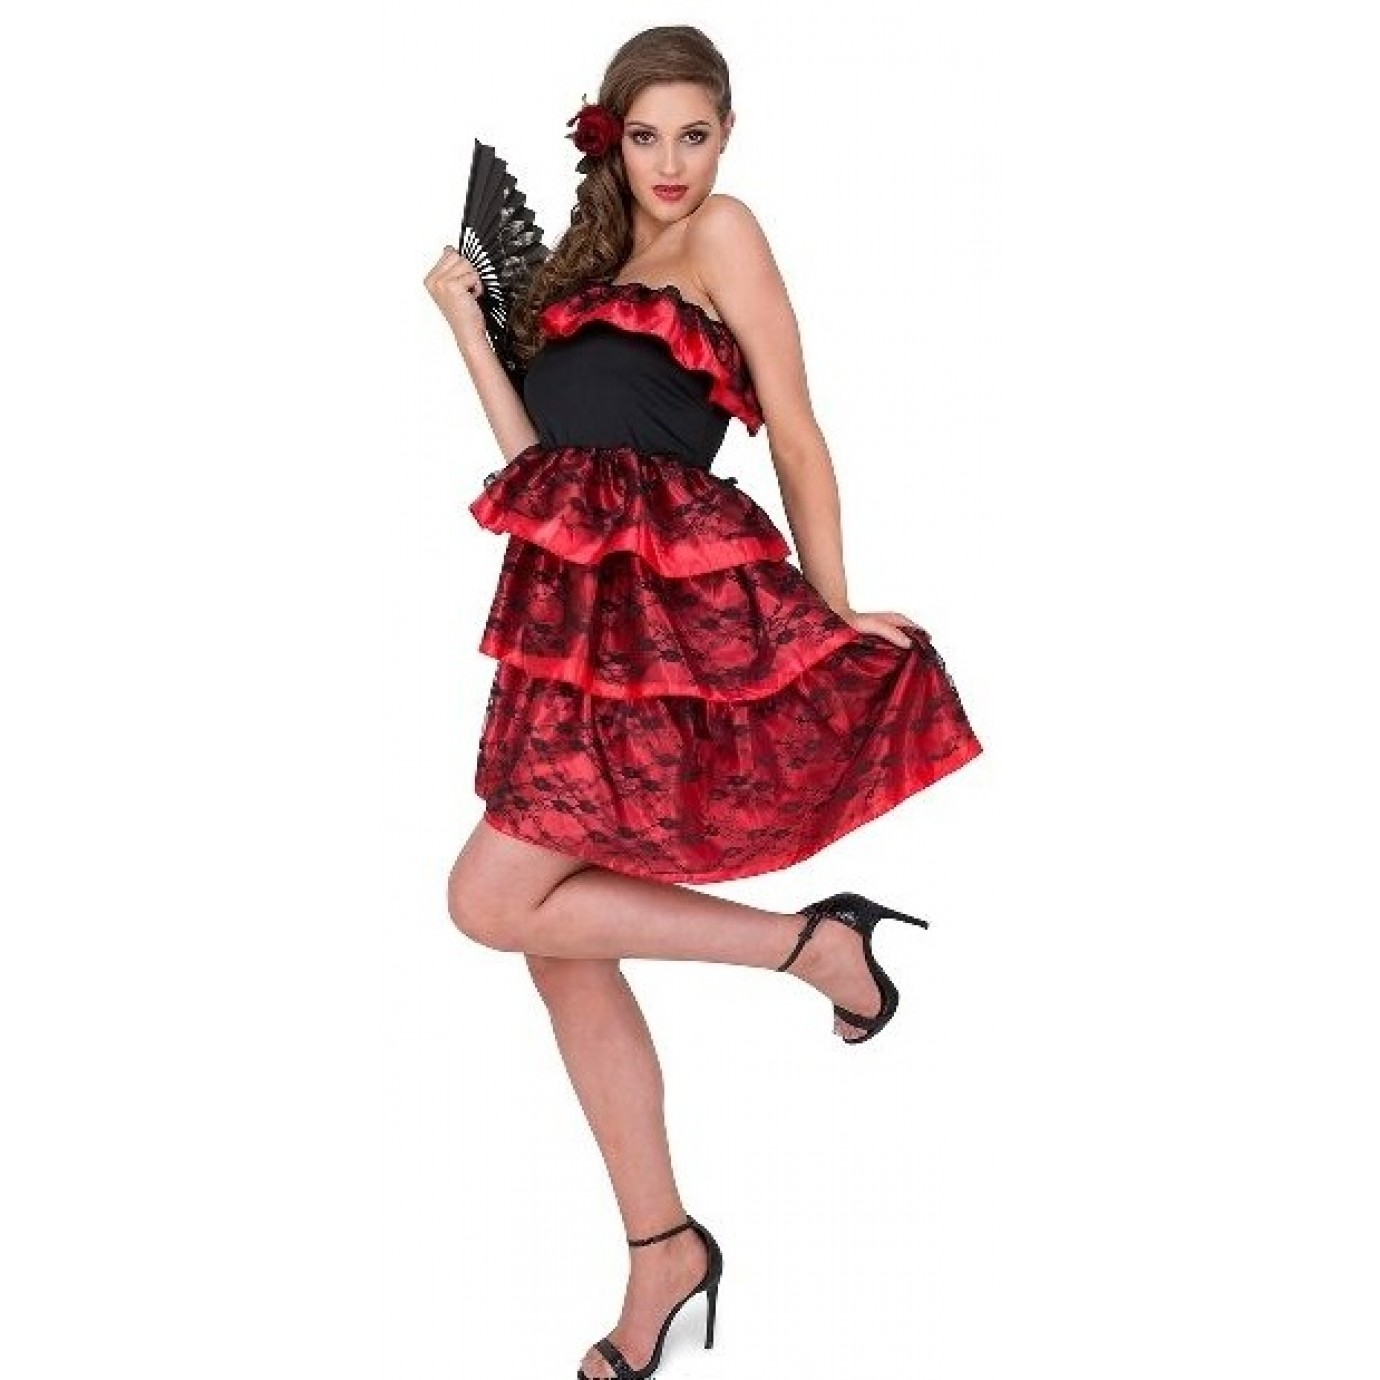 3a6b4dbf7 Adult Costume - Karnival, Spanish Dancer | Women's General | Female | Shop  by Size | Costumes | The Party People Shop